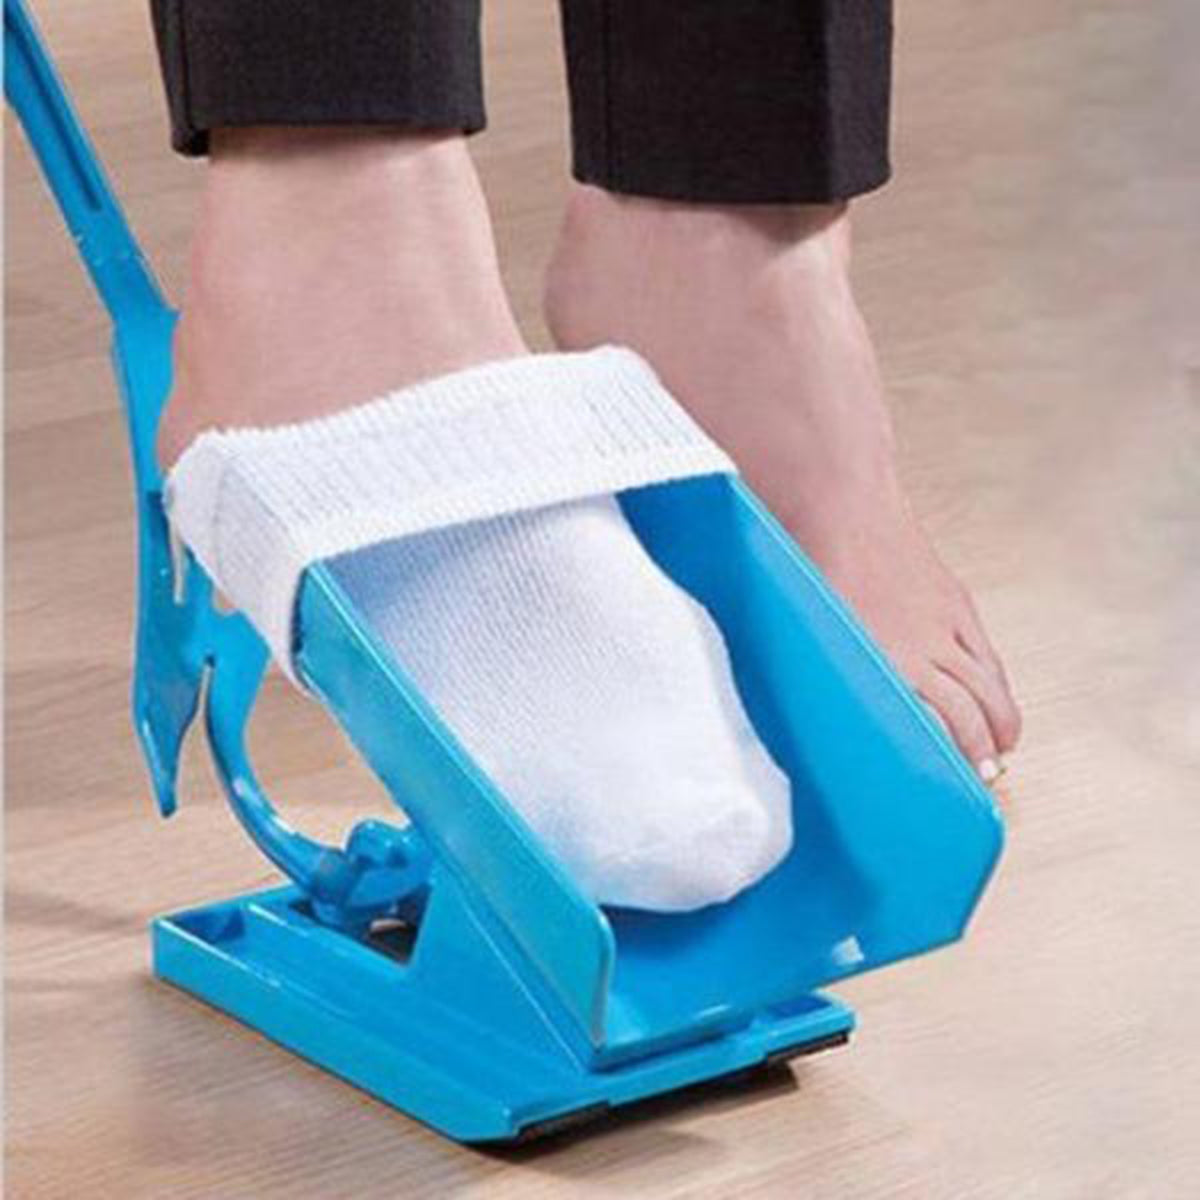 Suitable Easy Sock Aid for Pregnancy & Injuries